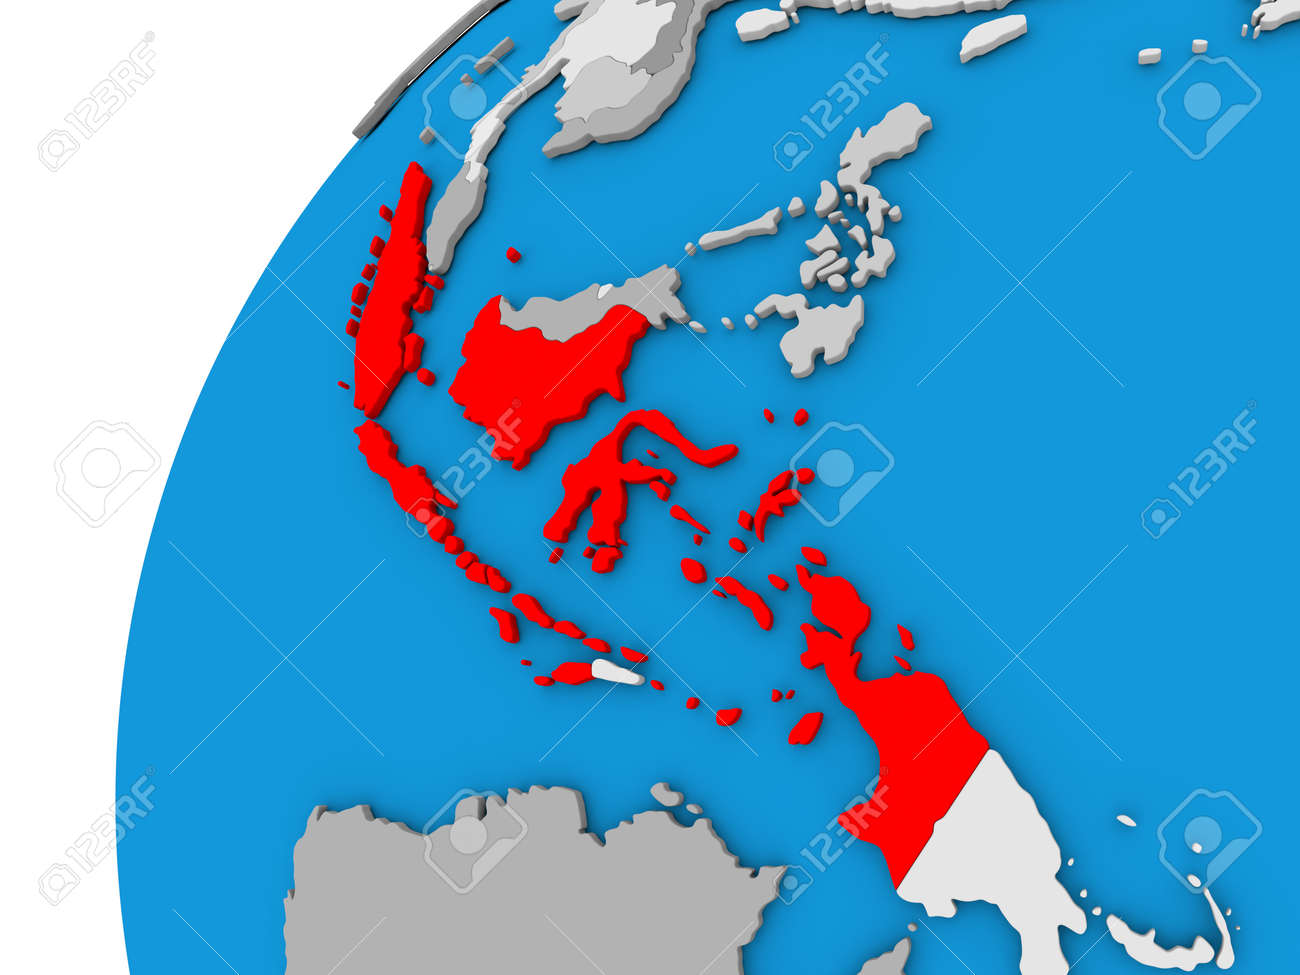 Indonesia highlighted in red on globe with visible country borders indonesia highlighted in red on globe with visible country borders 3d illustration foto de archivo gumiabroncs Images